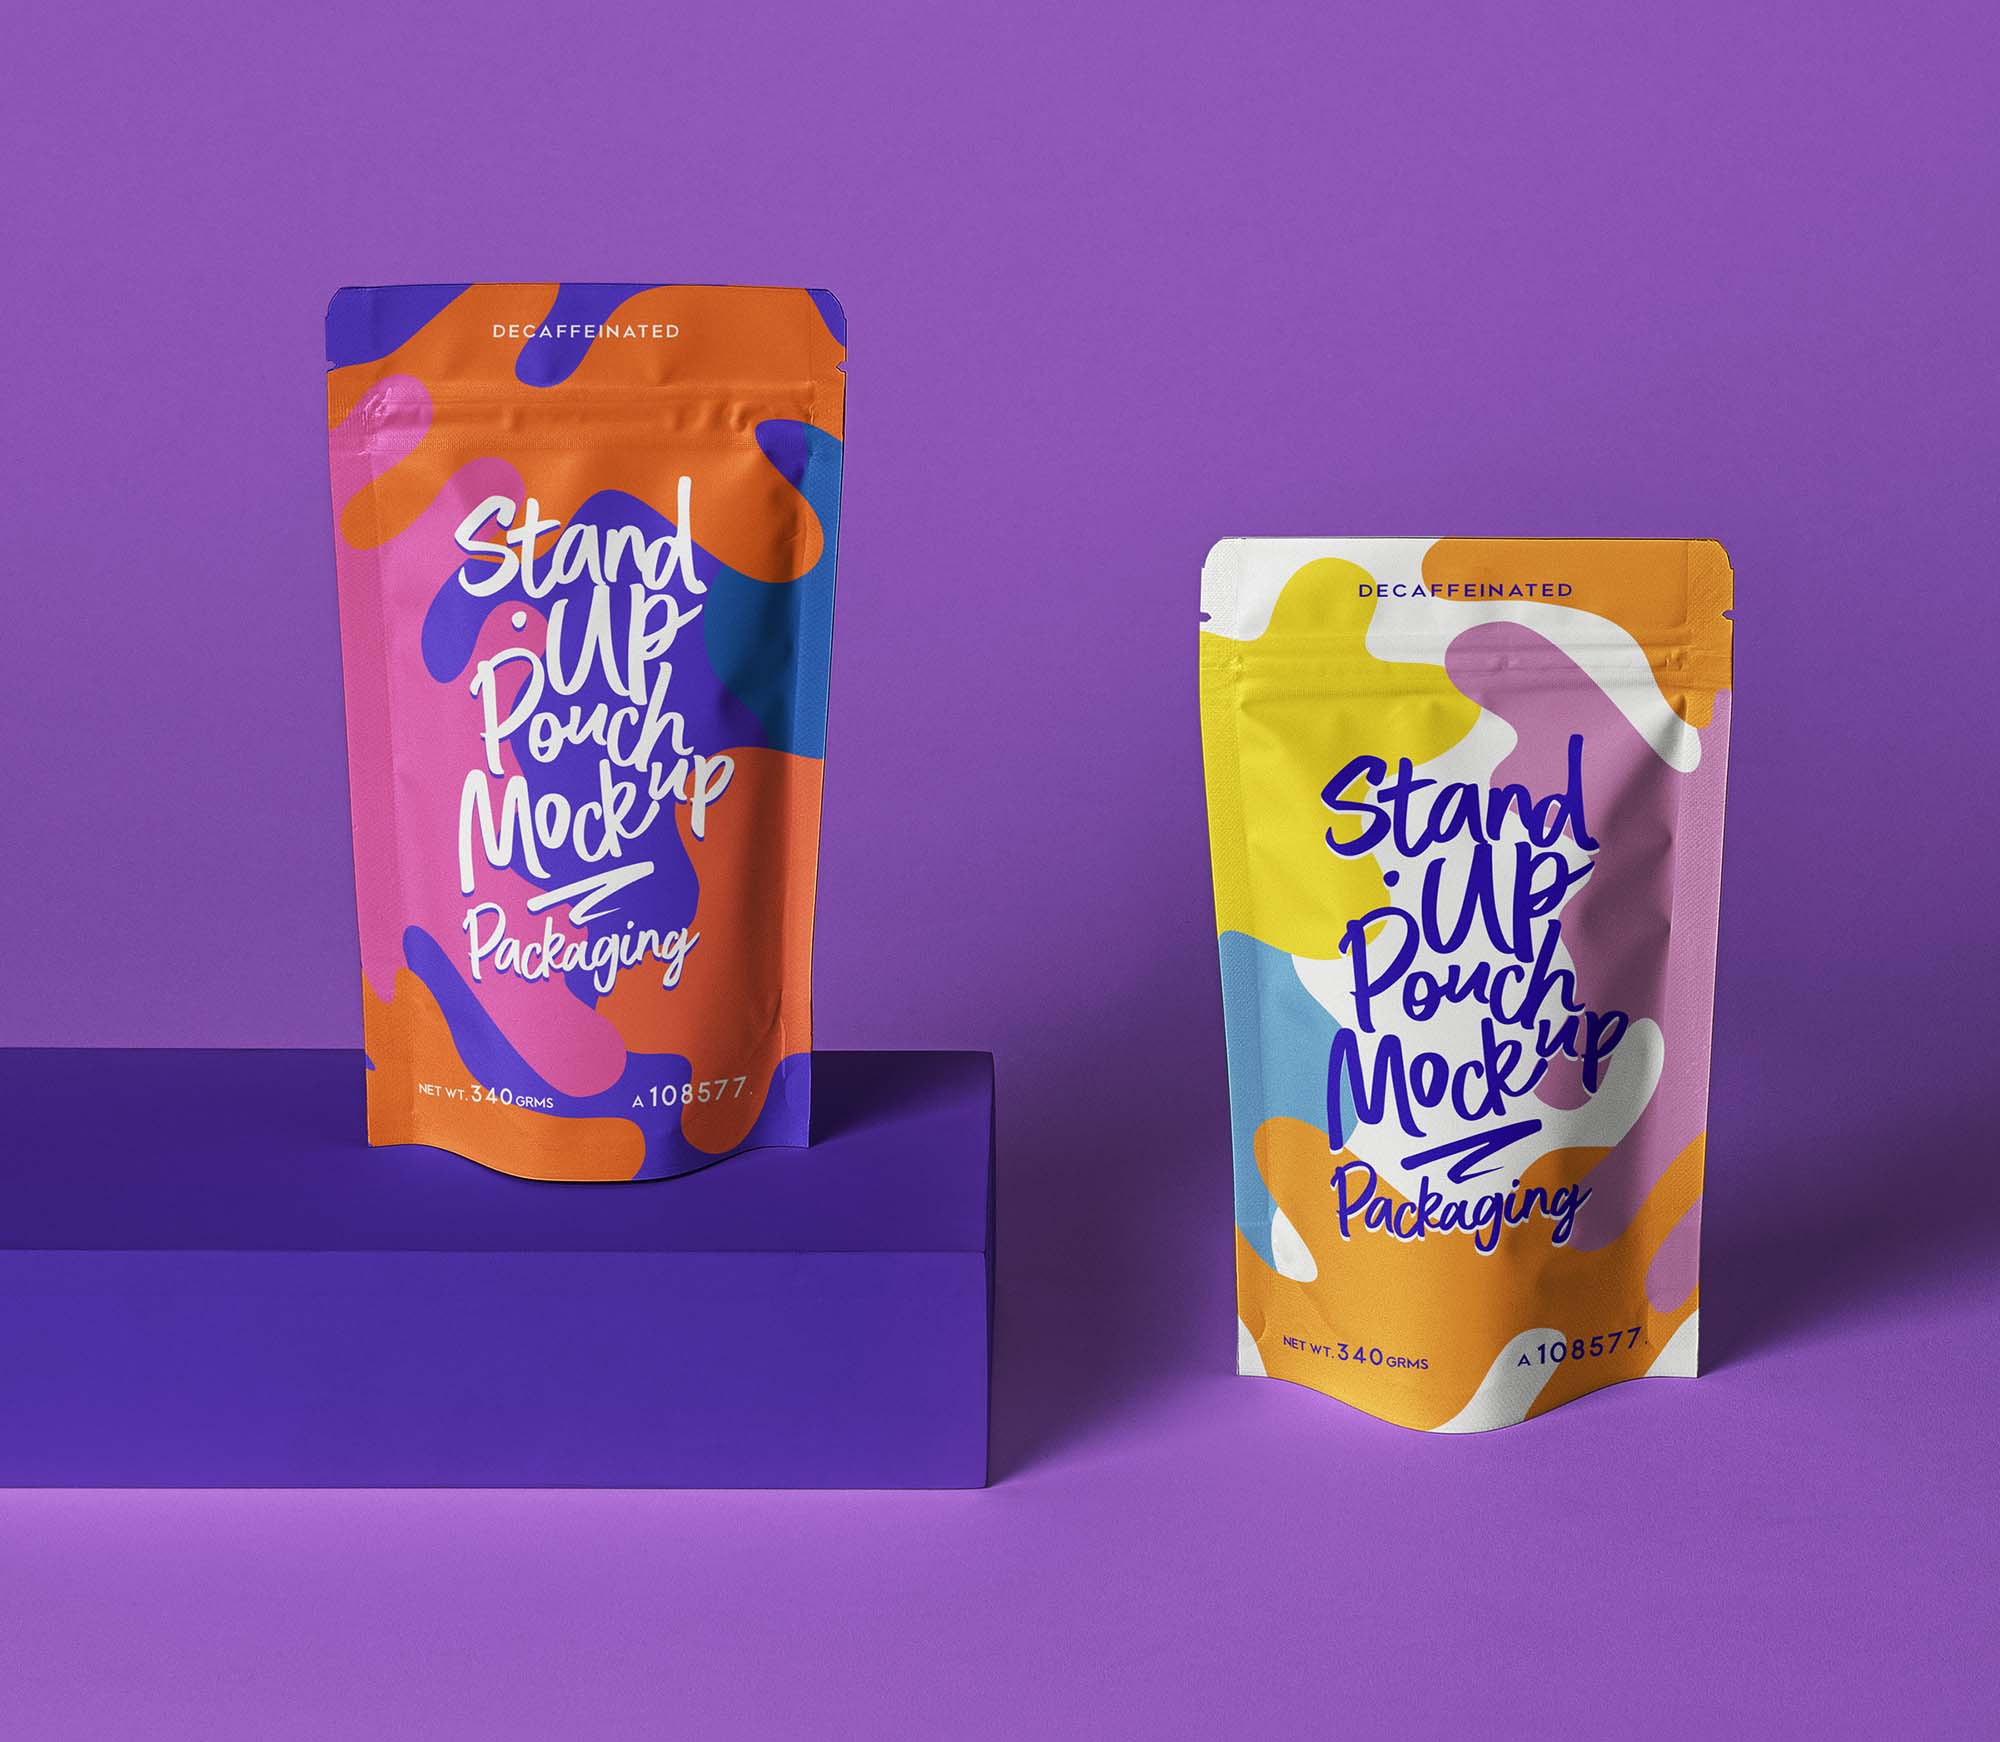 Stand Up Pouch Packaging Mockup 3